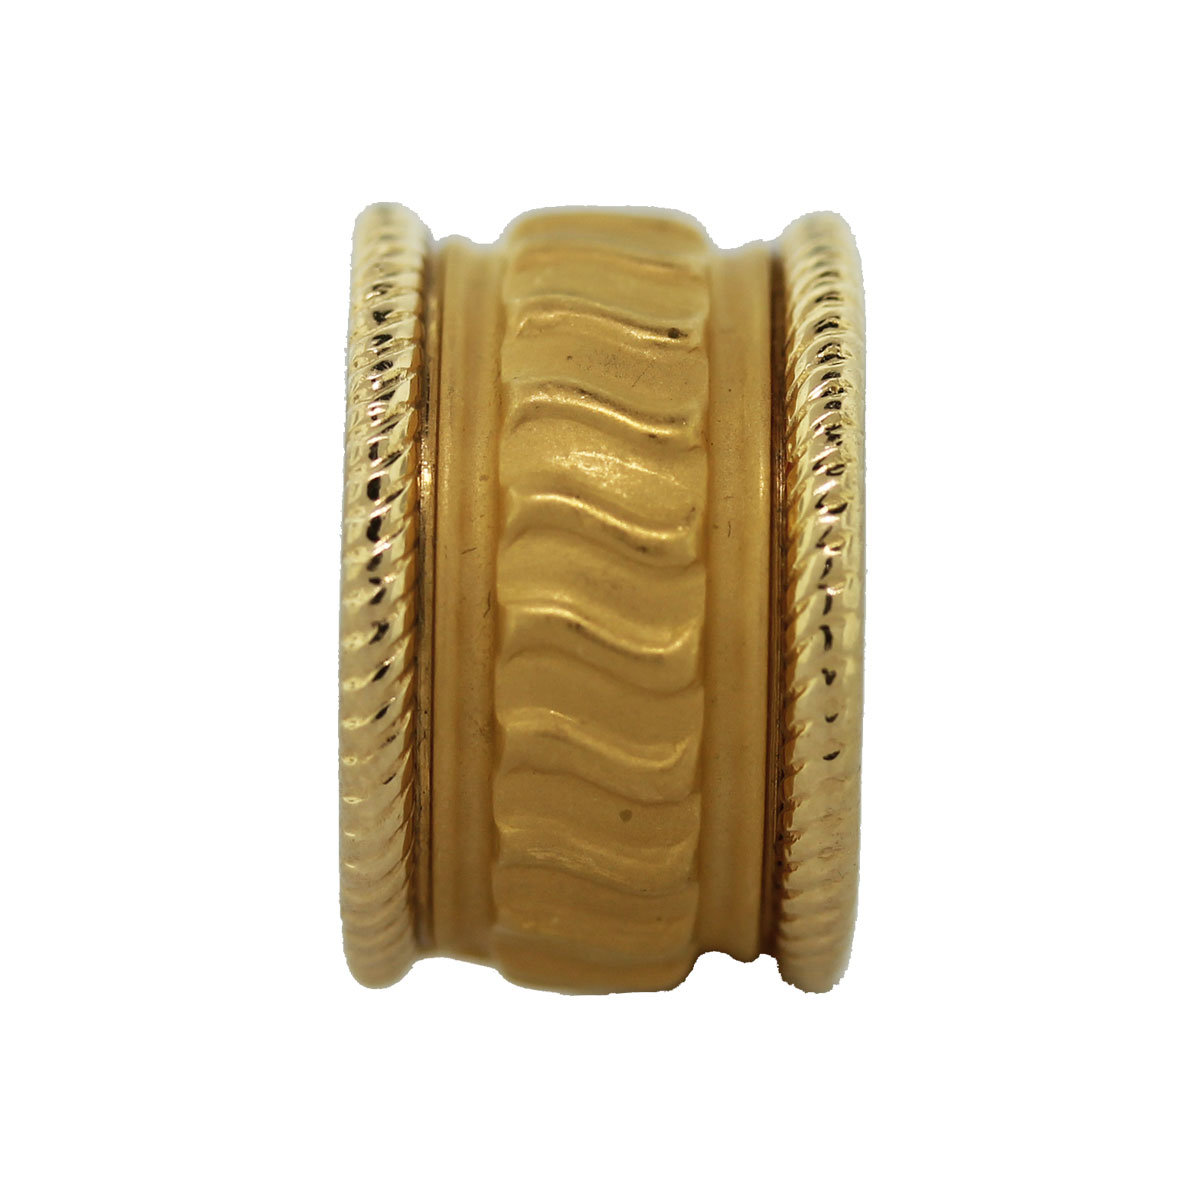 Carrera Y Carrera 18k Yellow Gold Ribbed Design Ring